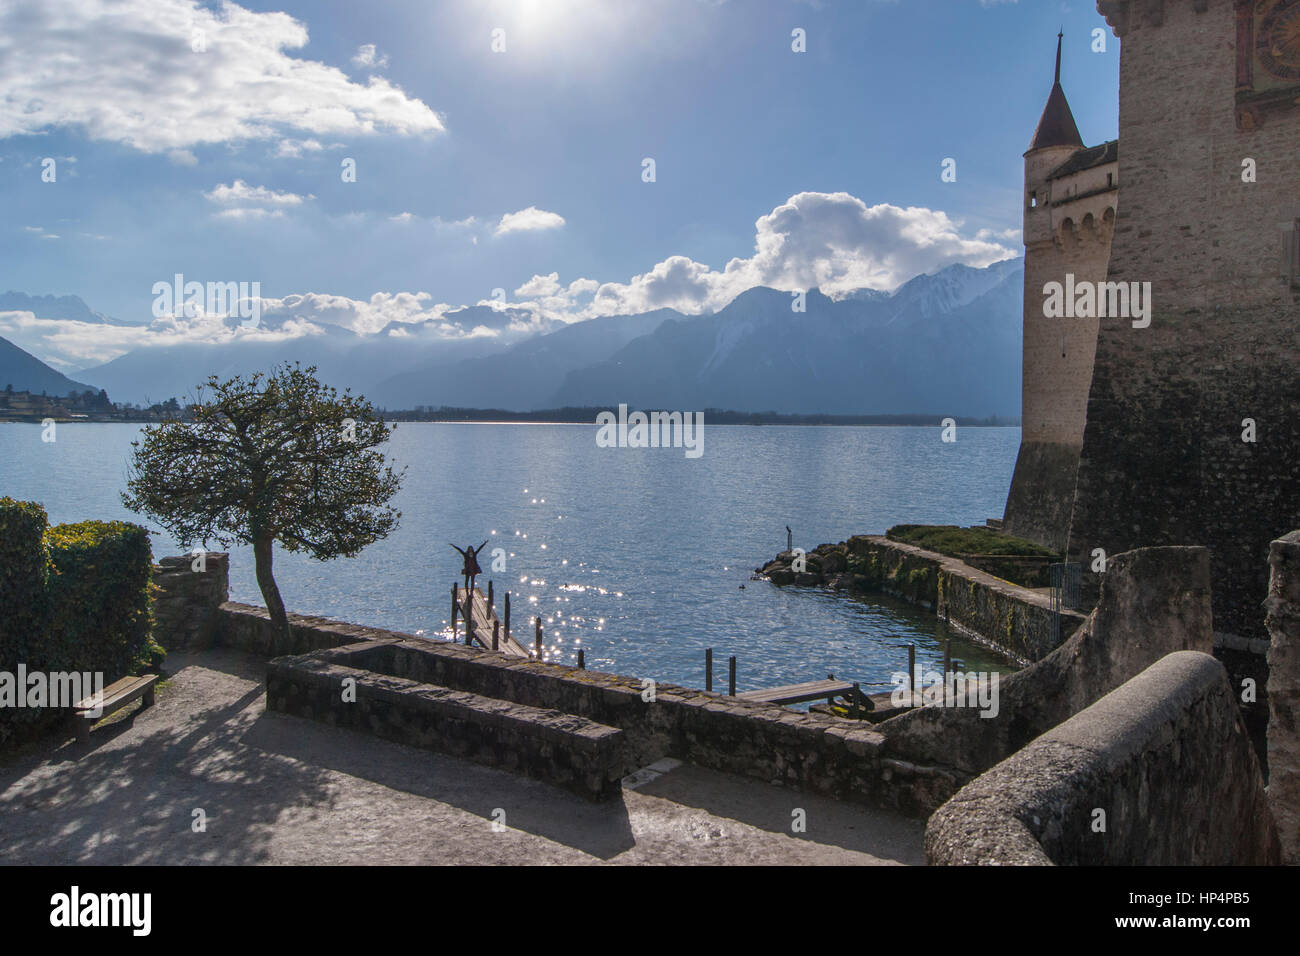 Lake Geneva, the Chillon Castle near Montreux, Switzerland - Stock Image